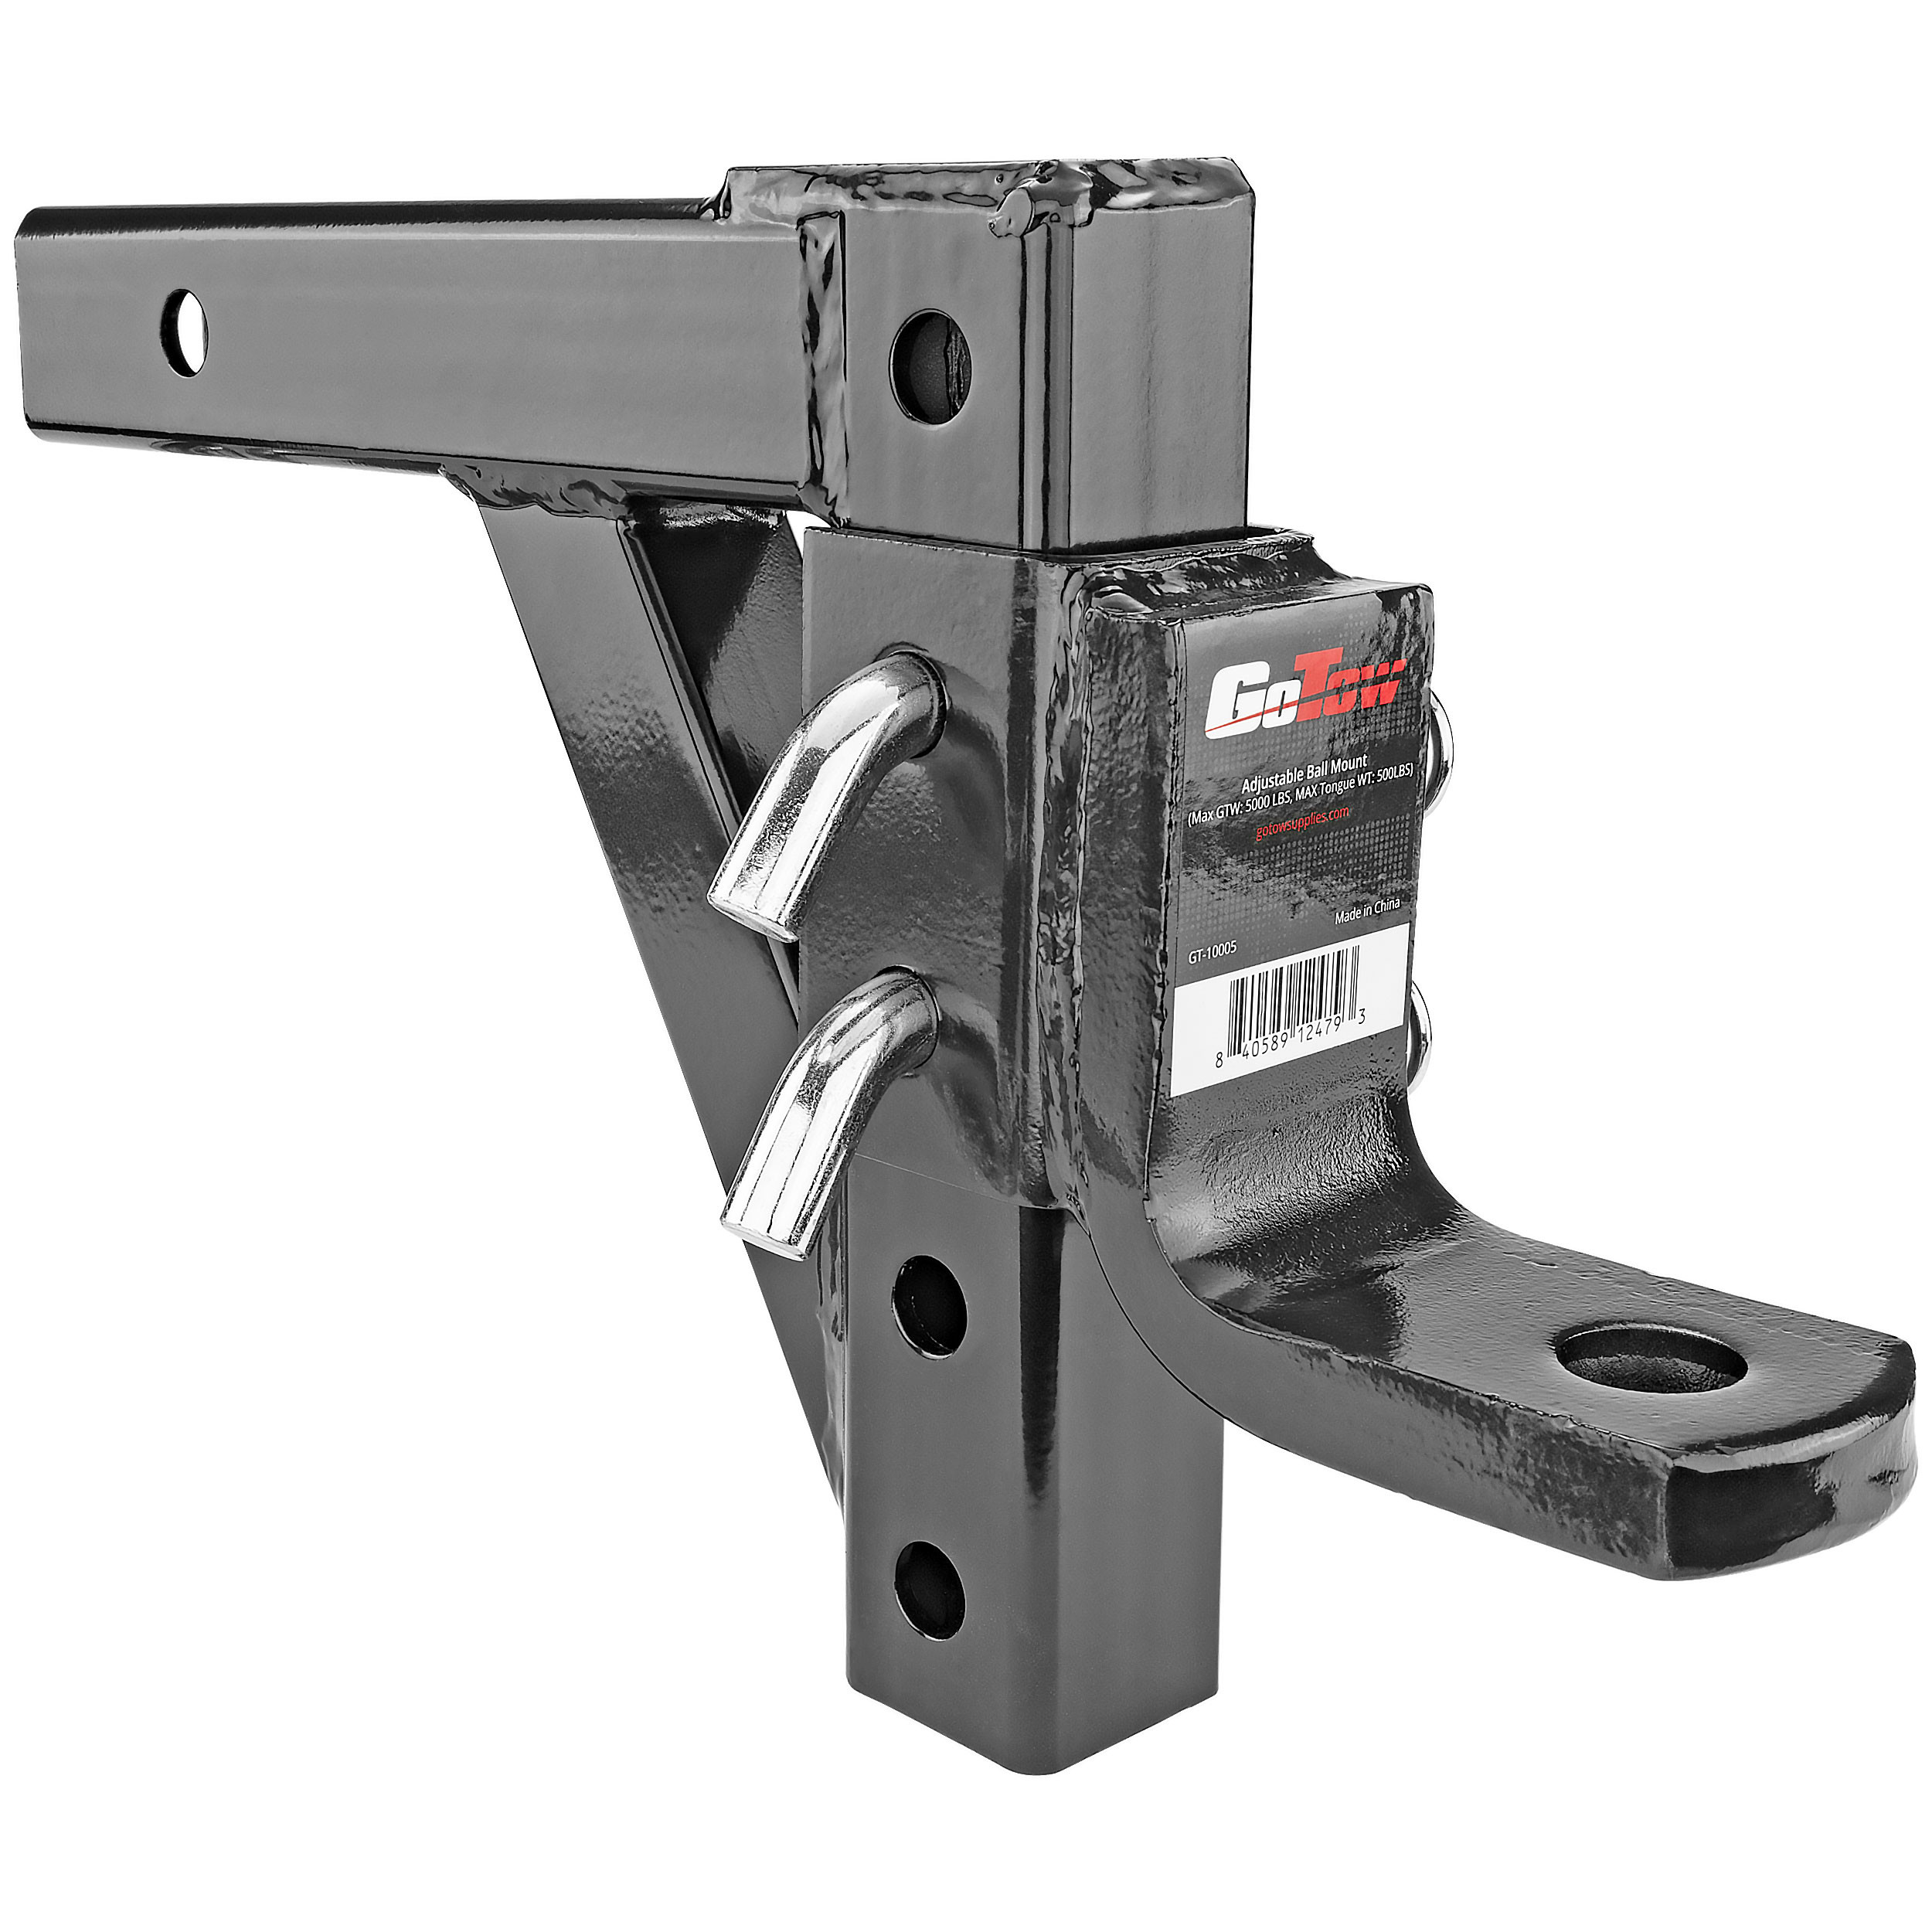 "GoTow GT-10005 Black 10"" Adjustable Ball Mount Hitch, 8 Positions-Fits 2"" Receiver, 5000lb GTW"